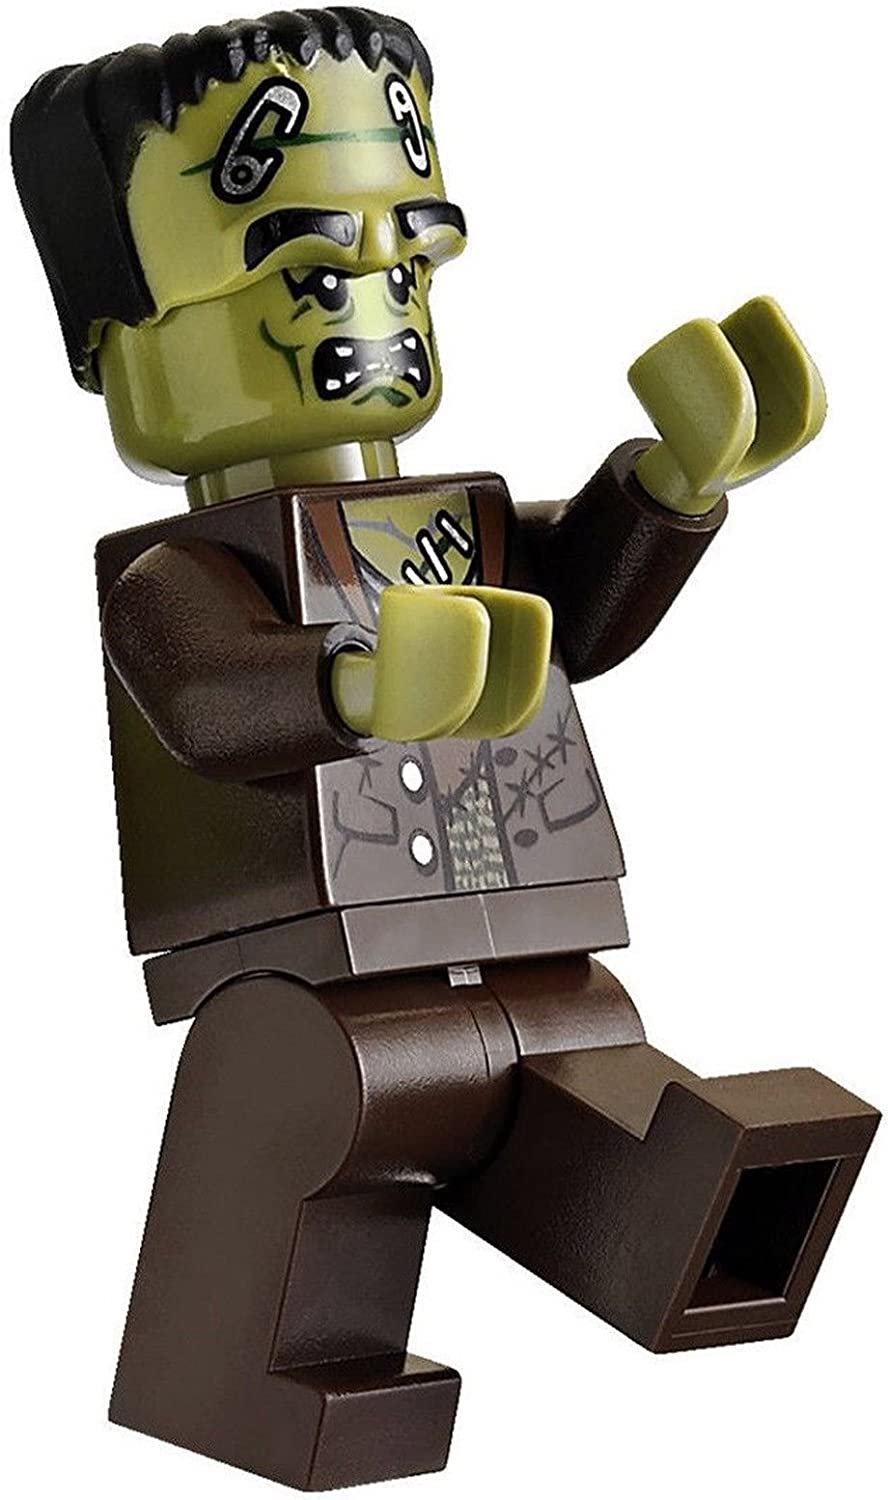 LEGO Monster Fighters Minifigure - Frankenstein Monster Halloween (9466)